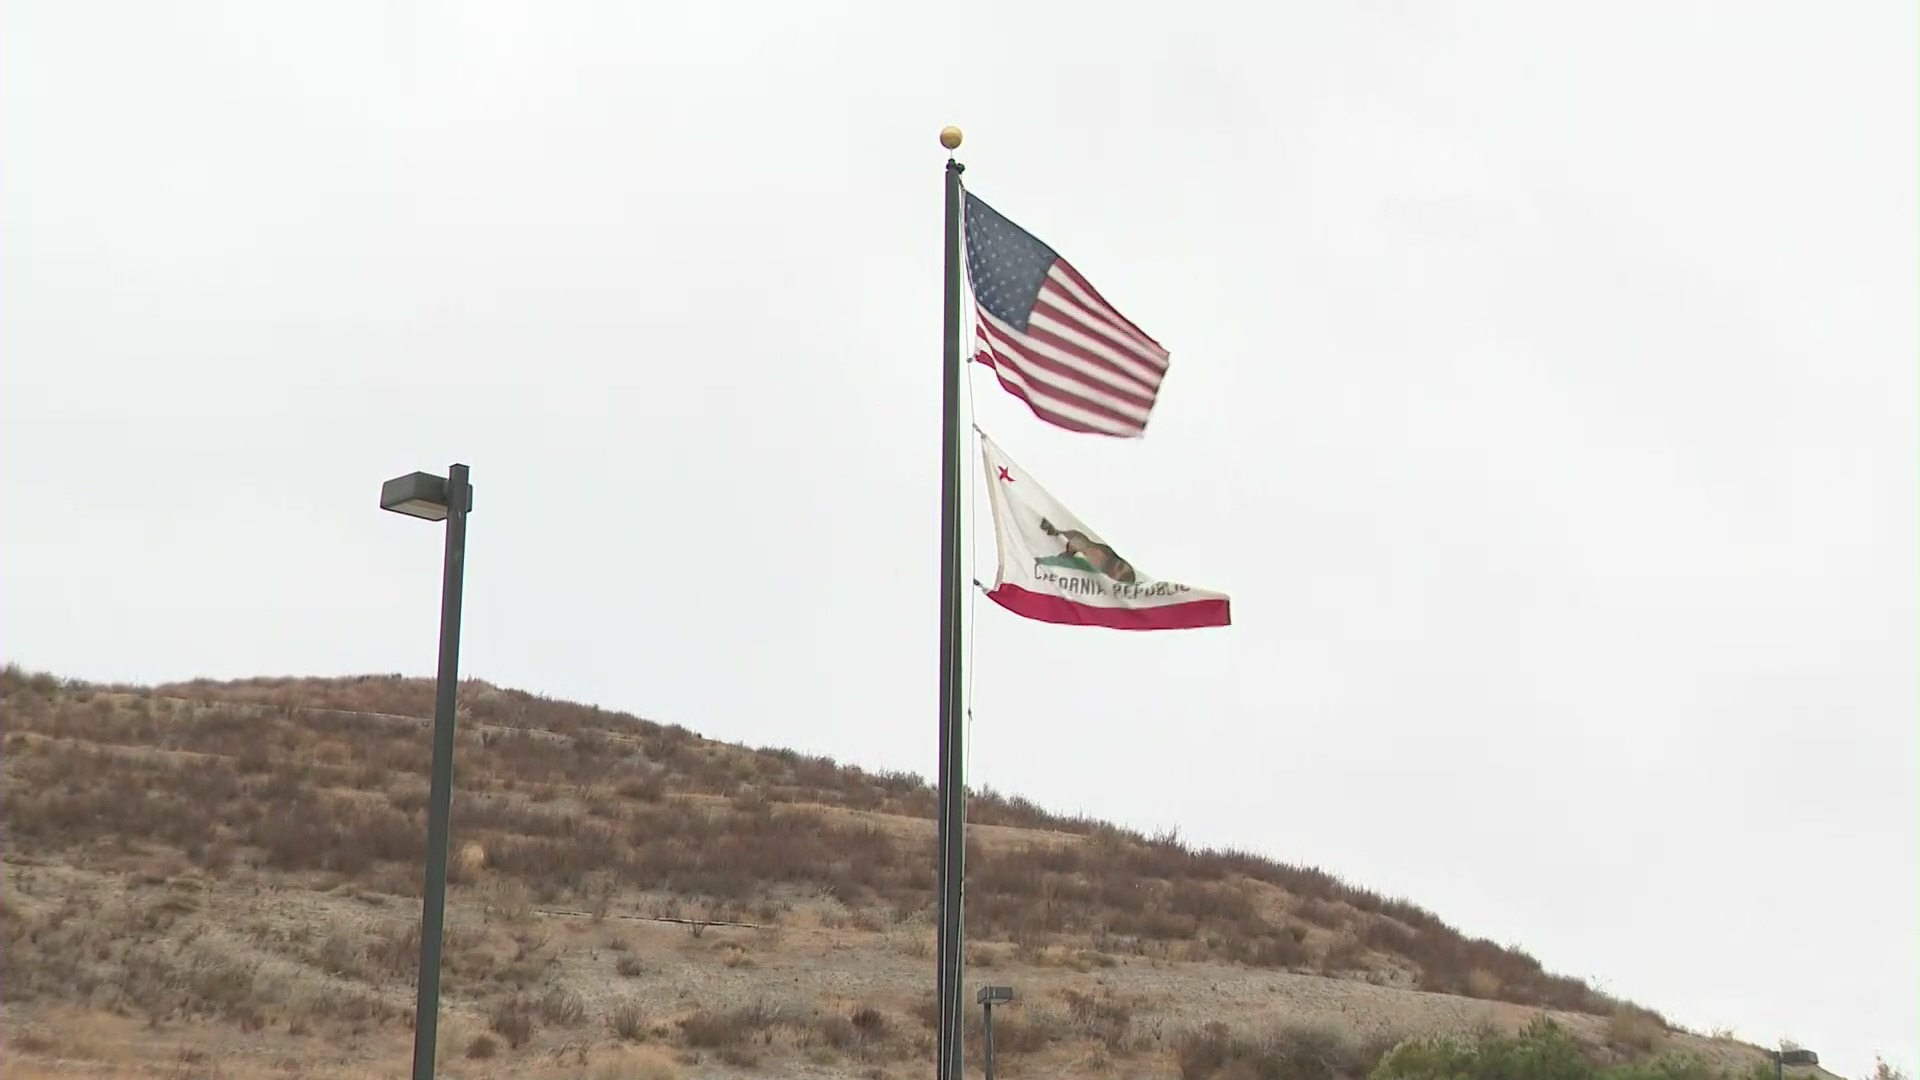 A U.S. and California flag fly in the air as wind blows through Santa Clarita on Dec. 7, 2020. (KTLA)